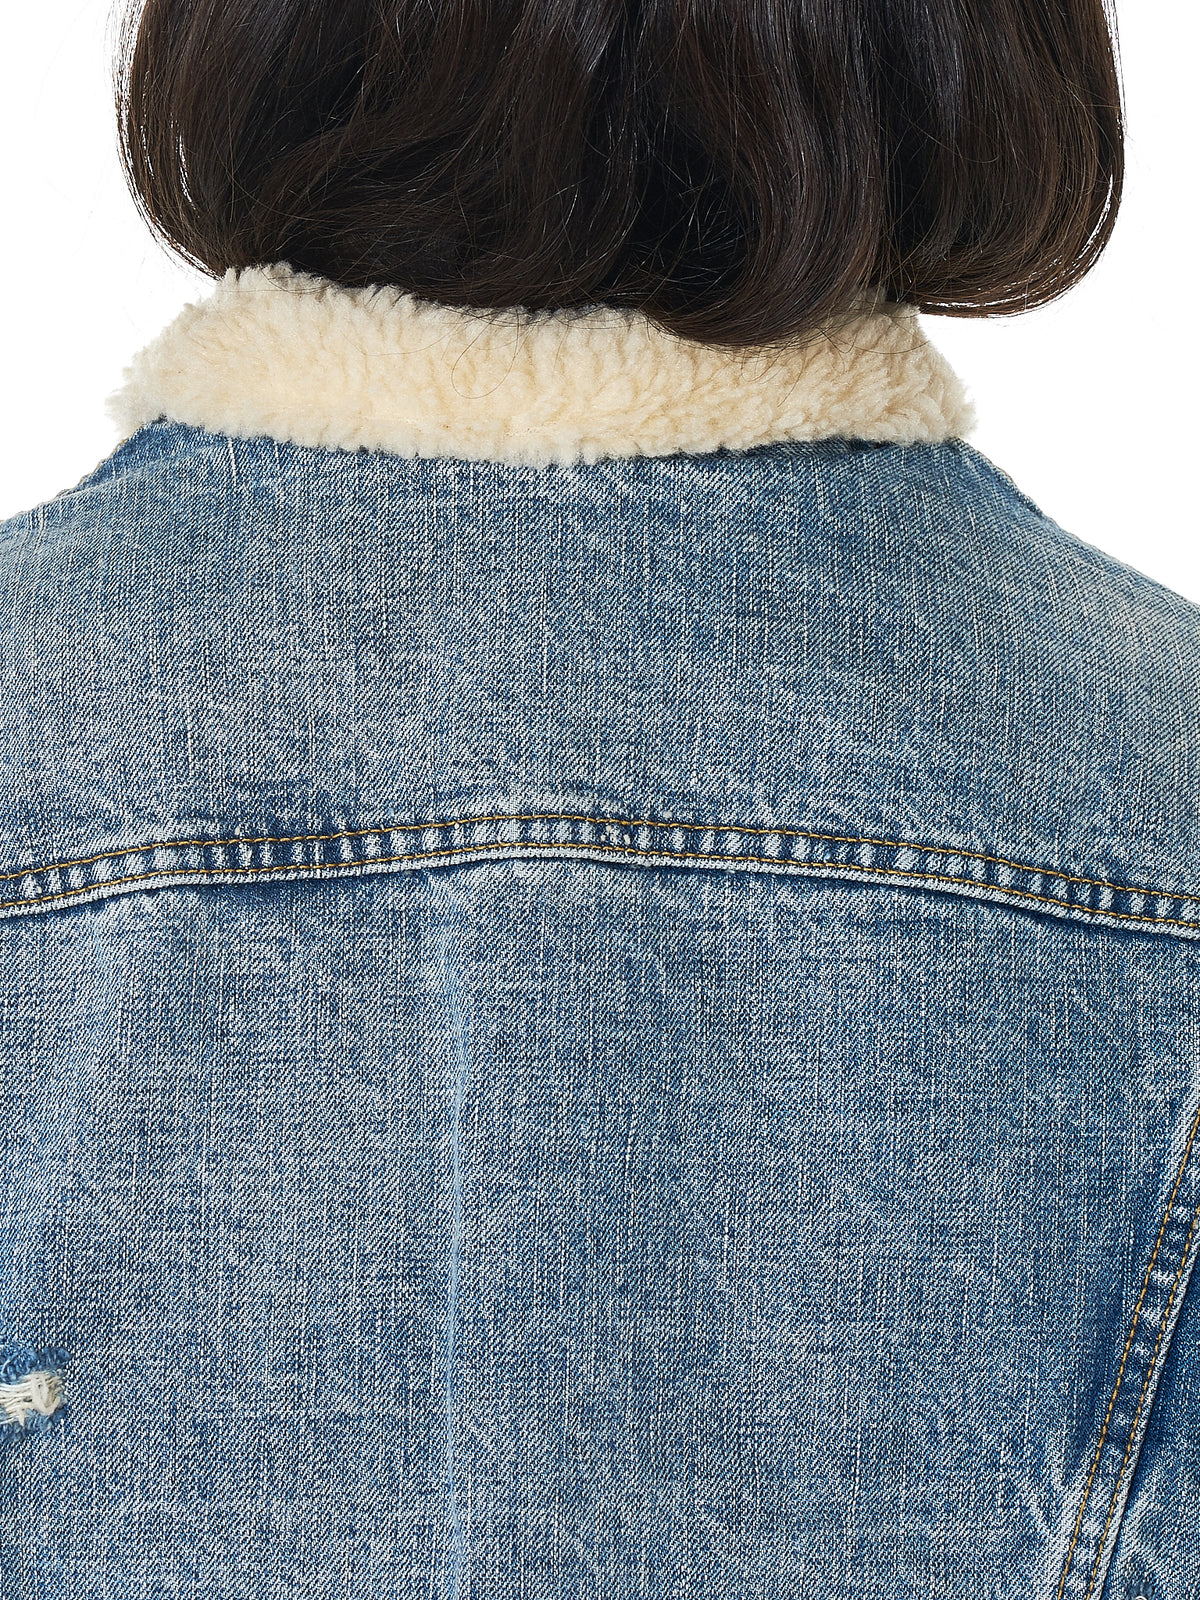 R13 Shearling Denim Jacket - Hlorenzo Detail 2